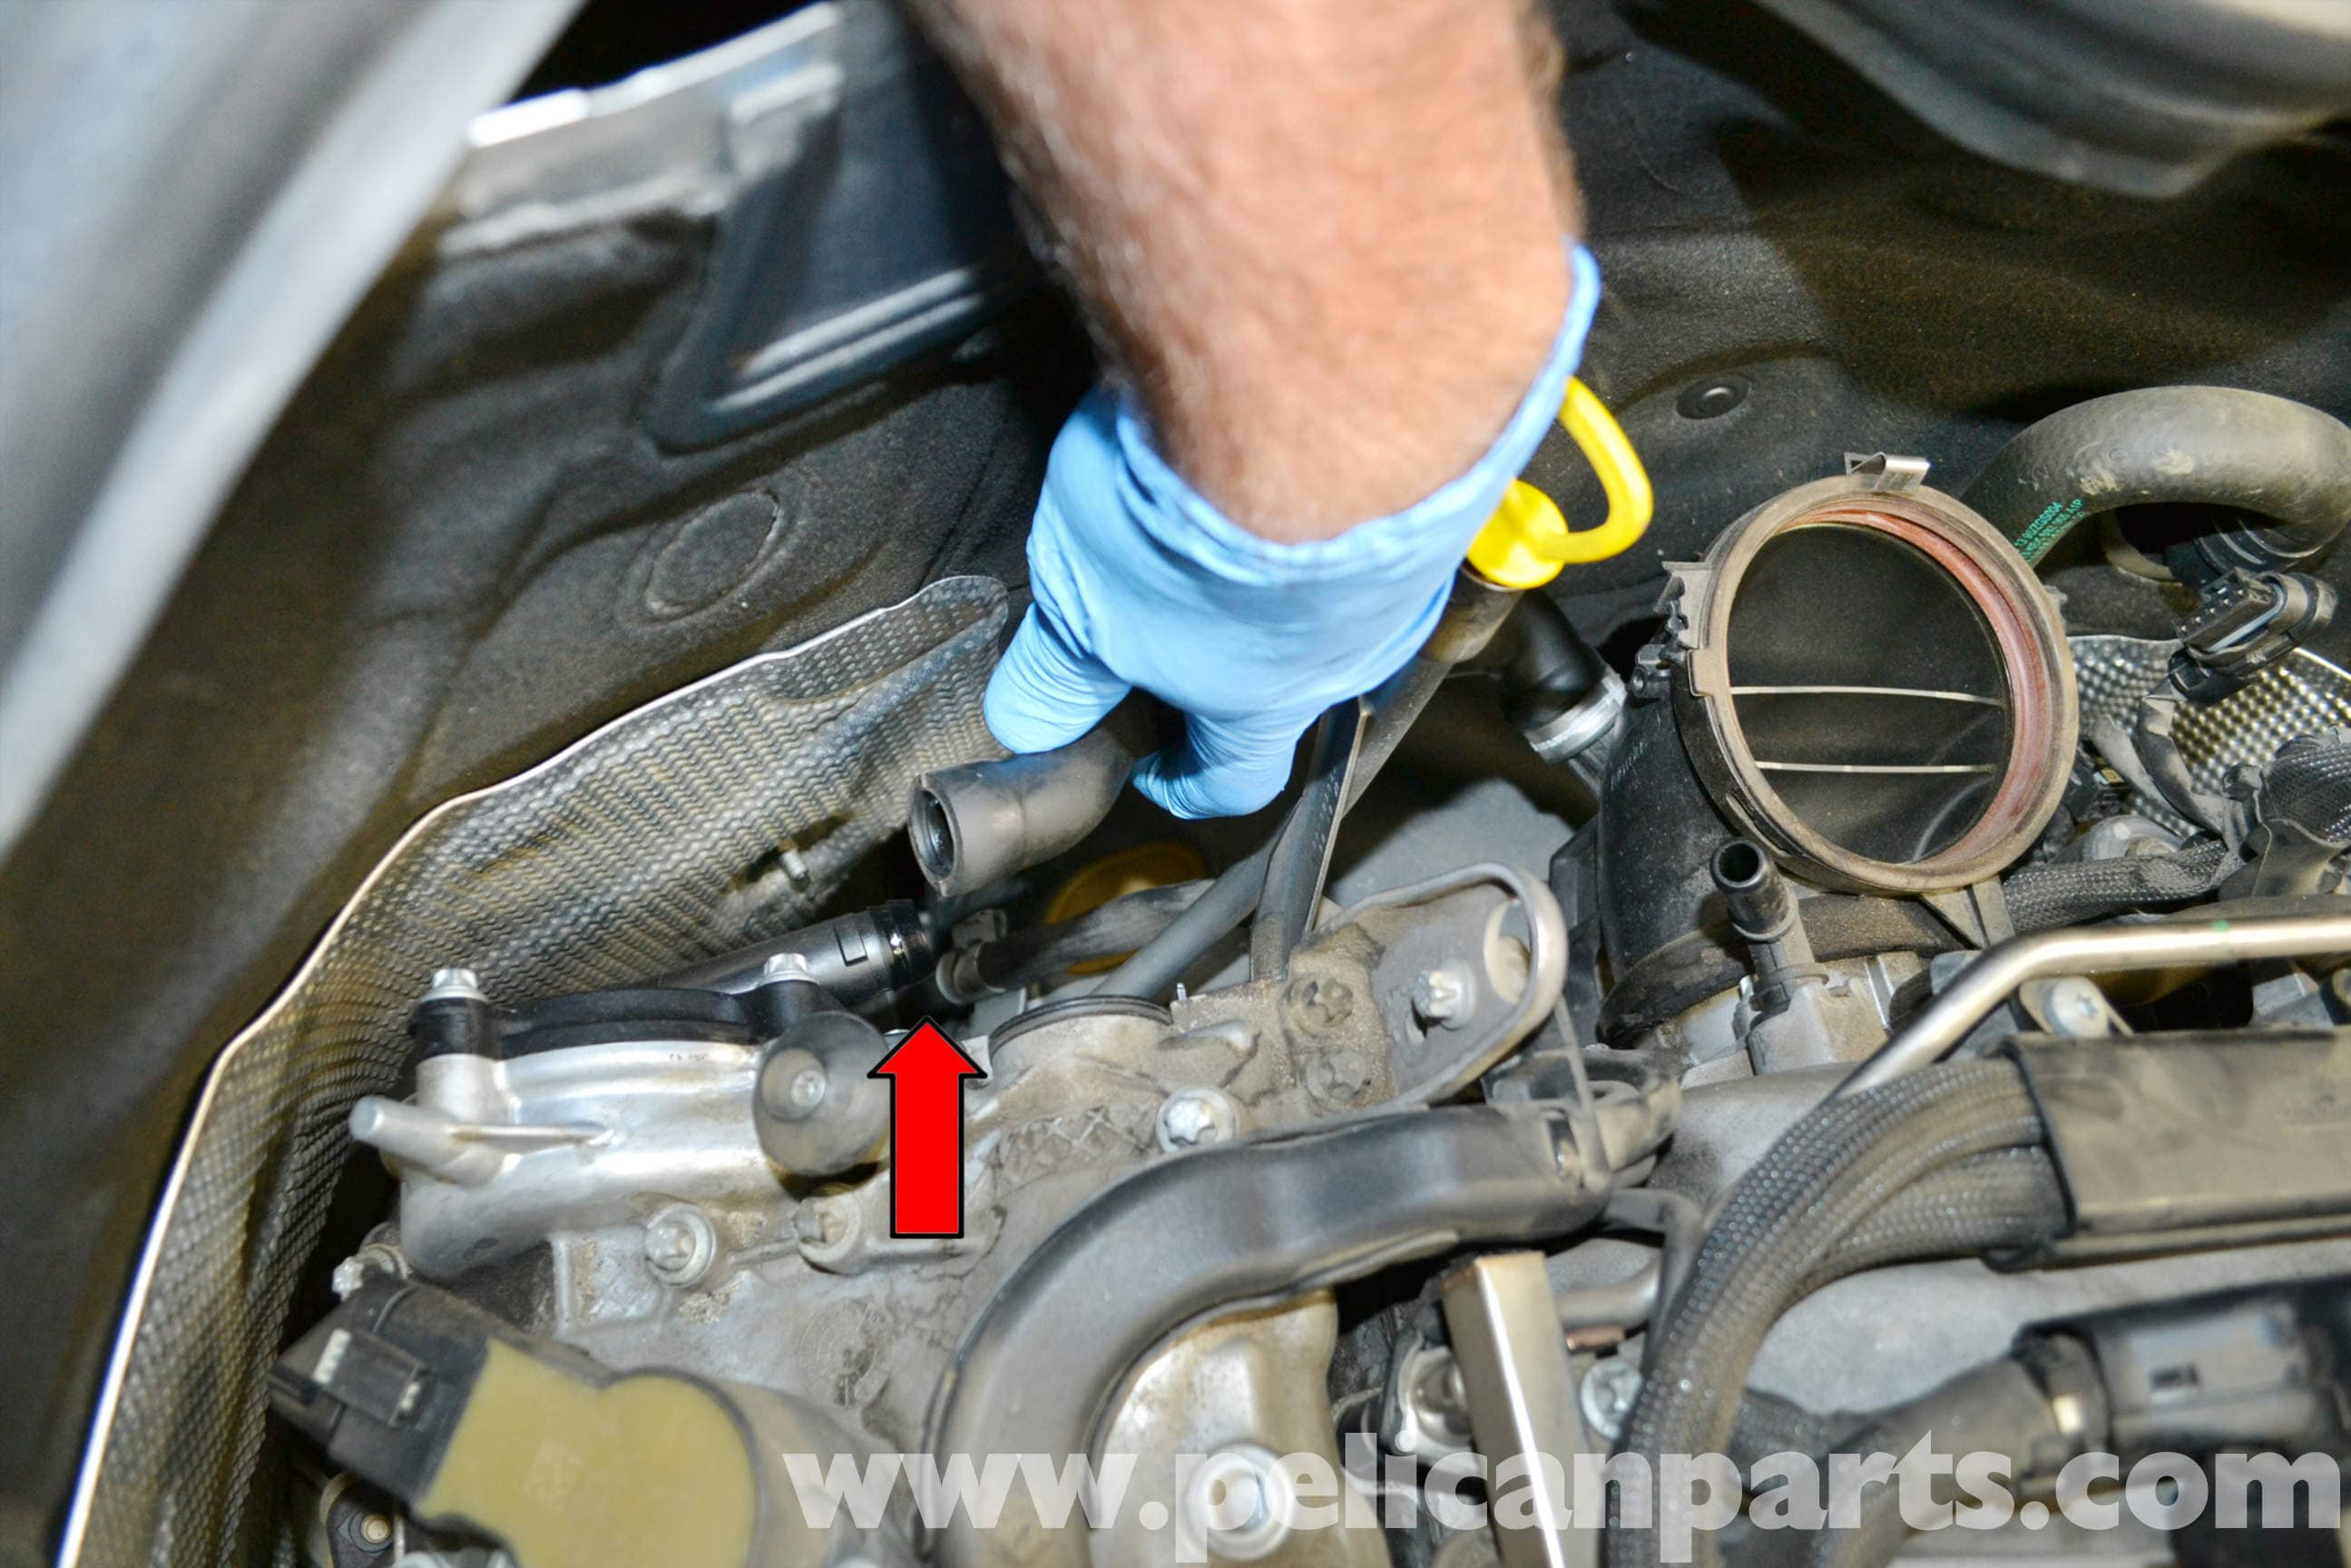 Mercedes Benz W204 Breather Hose And Cover Replacement